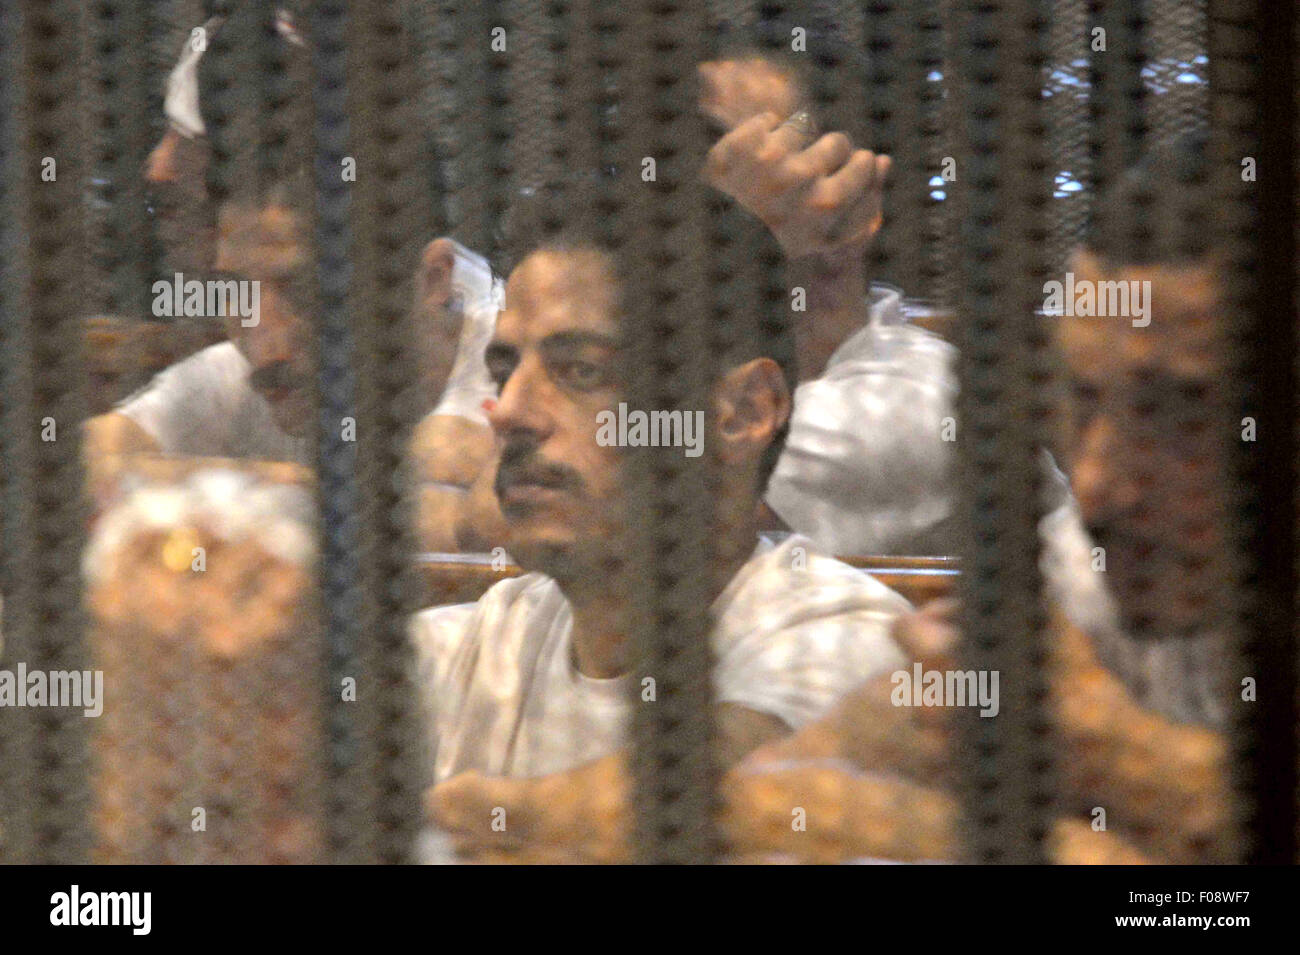 Cairo, Egypt. 9th Aug, 2015. Egyptian defendants sit behind bars during their trial over a 2012 stadium riot in Stock Photo